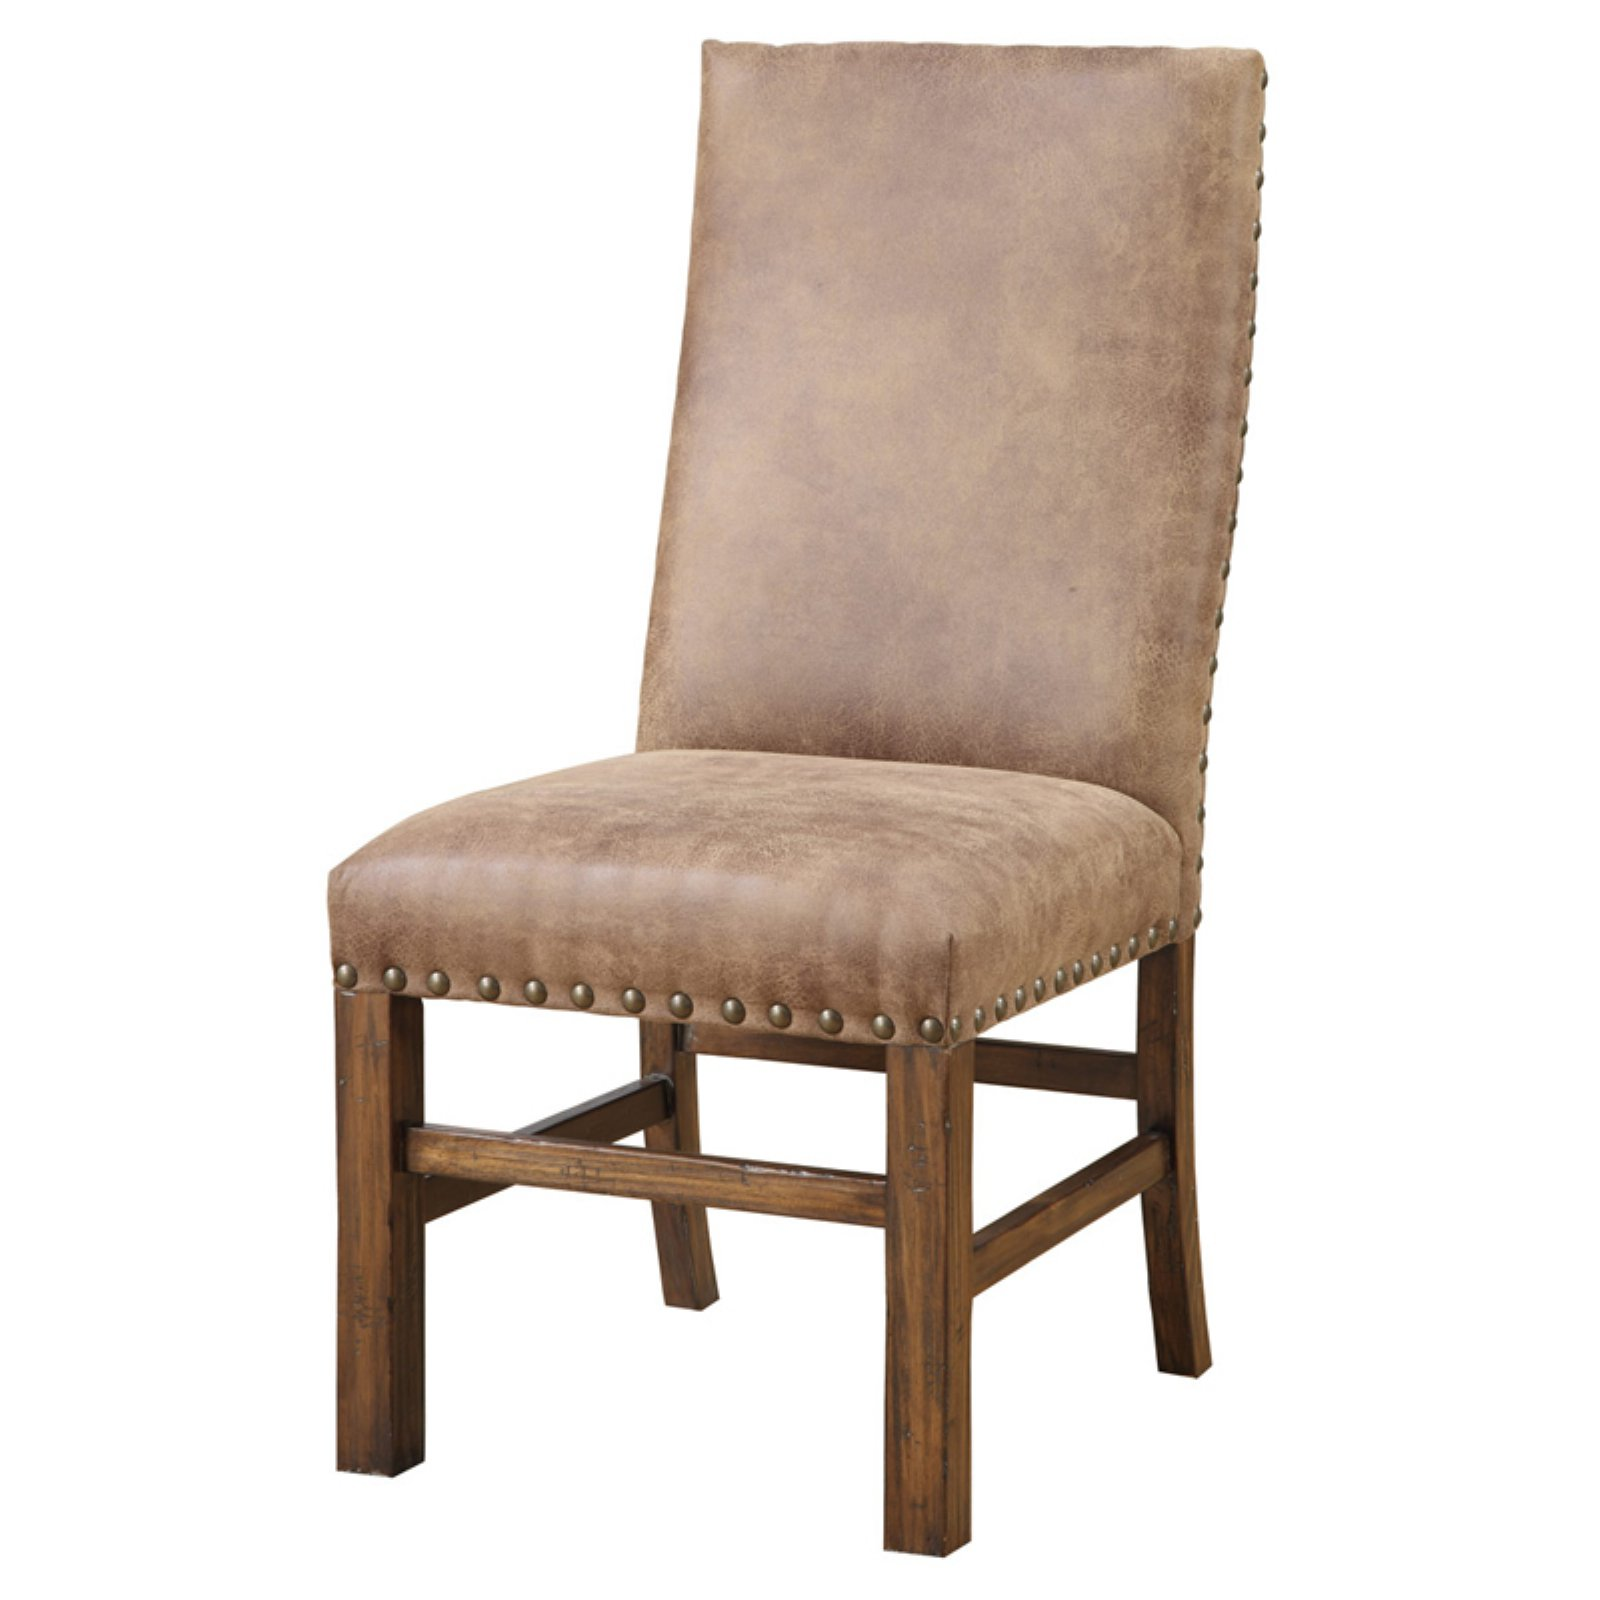 upholstered chair with nailhead trim black chairs target emerald home chambers creek side walmart com